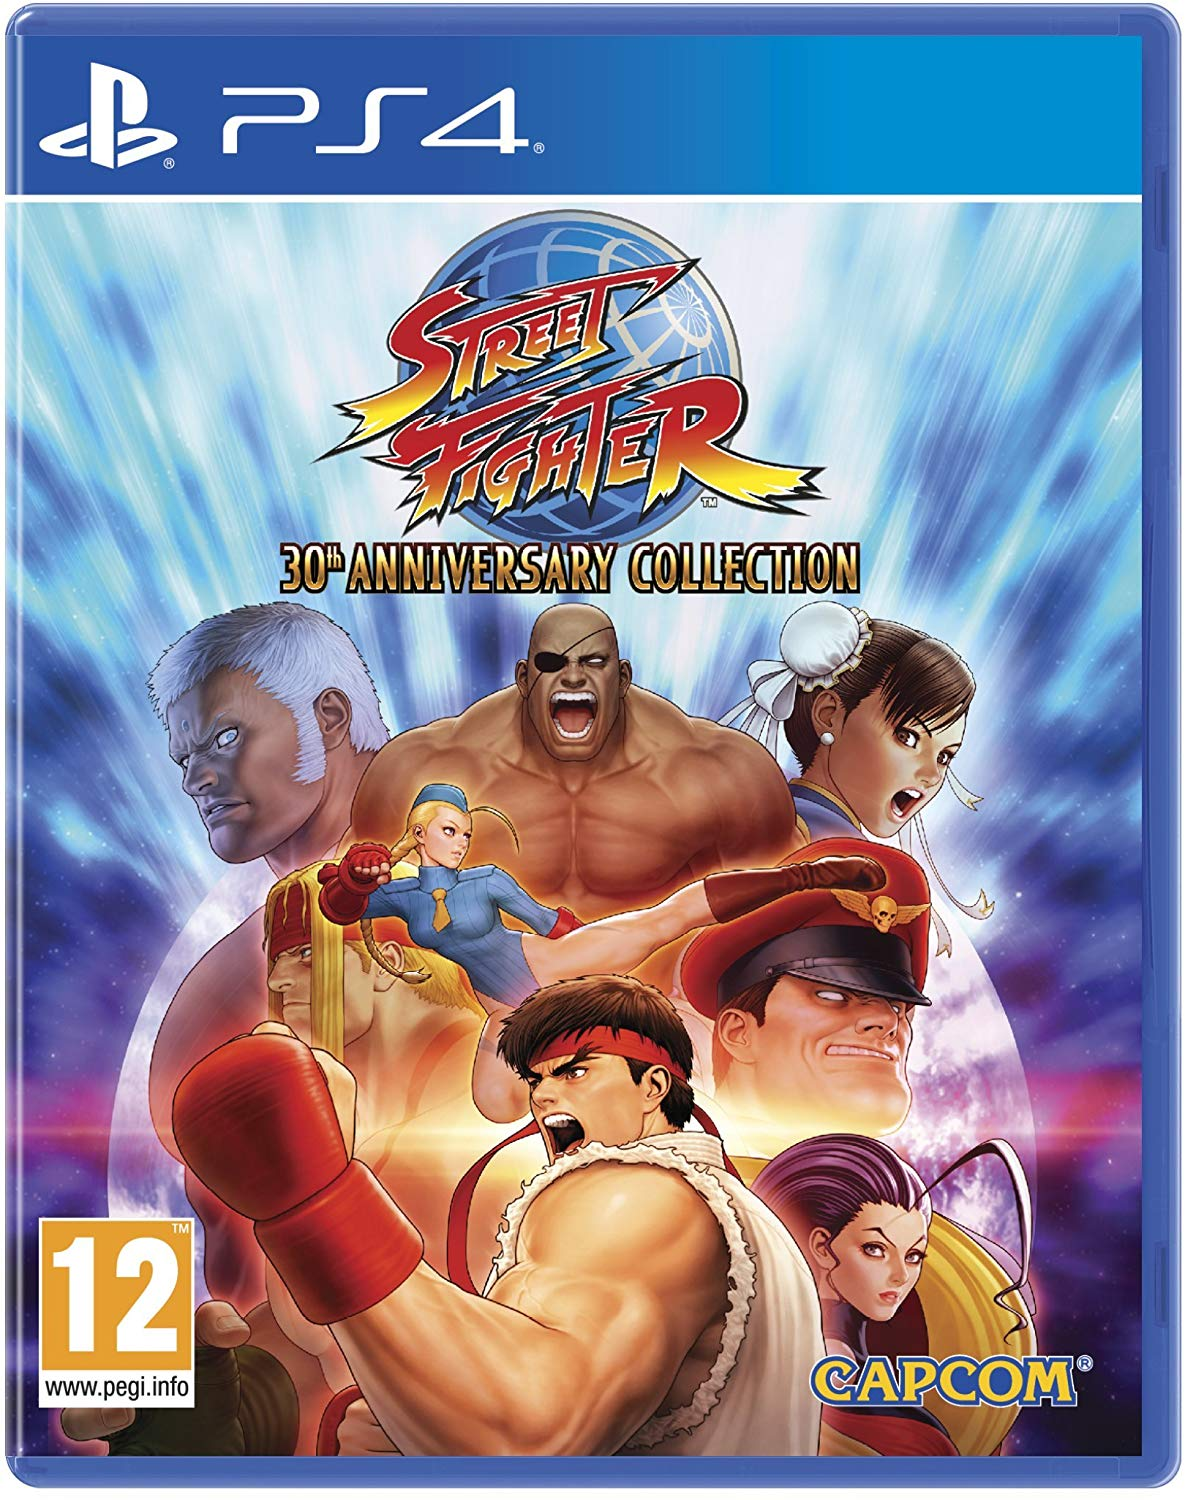 Street Fighter 30th Anniversary Collection PS4, PS4, DVDMEGASTORE, DVDMEGASTORE